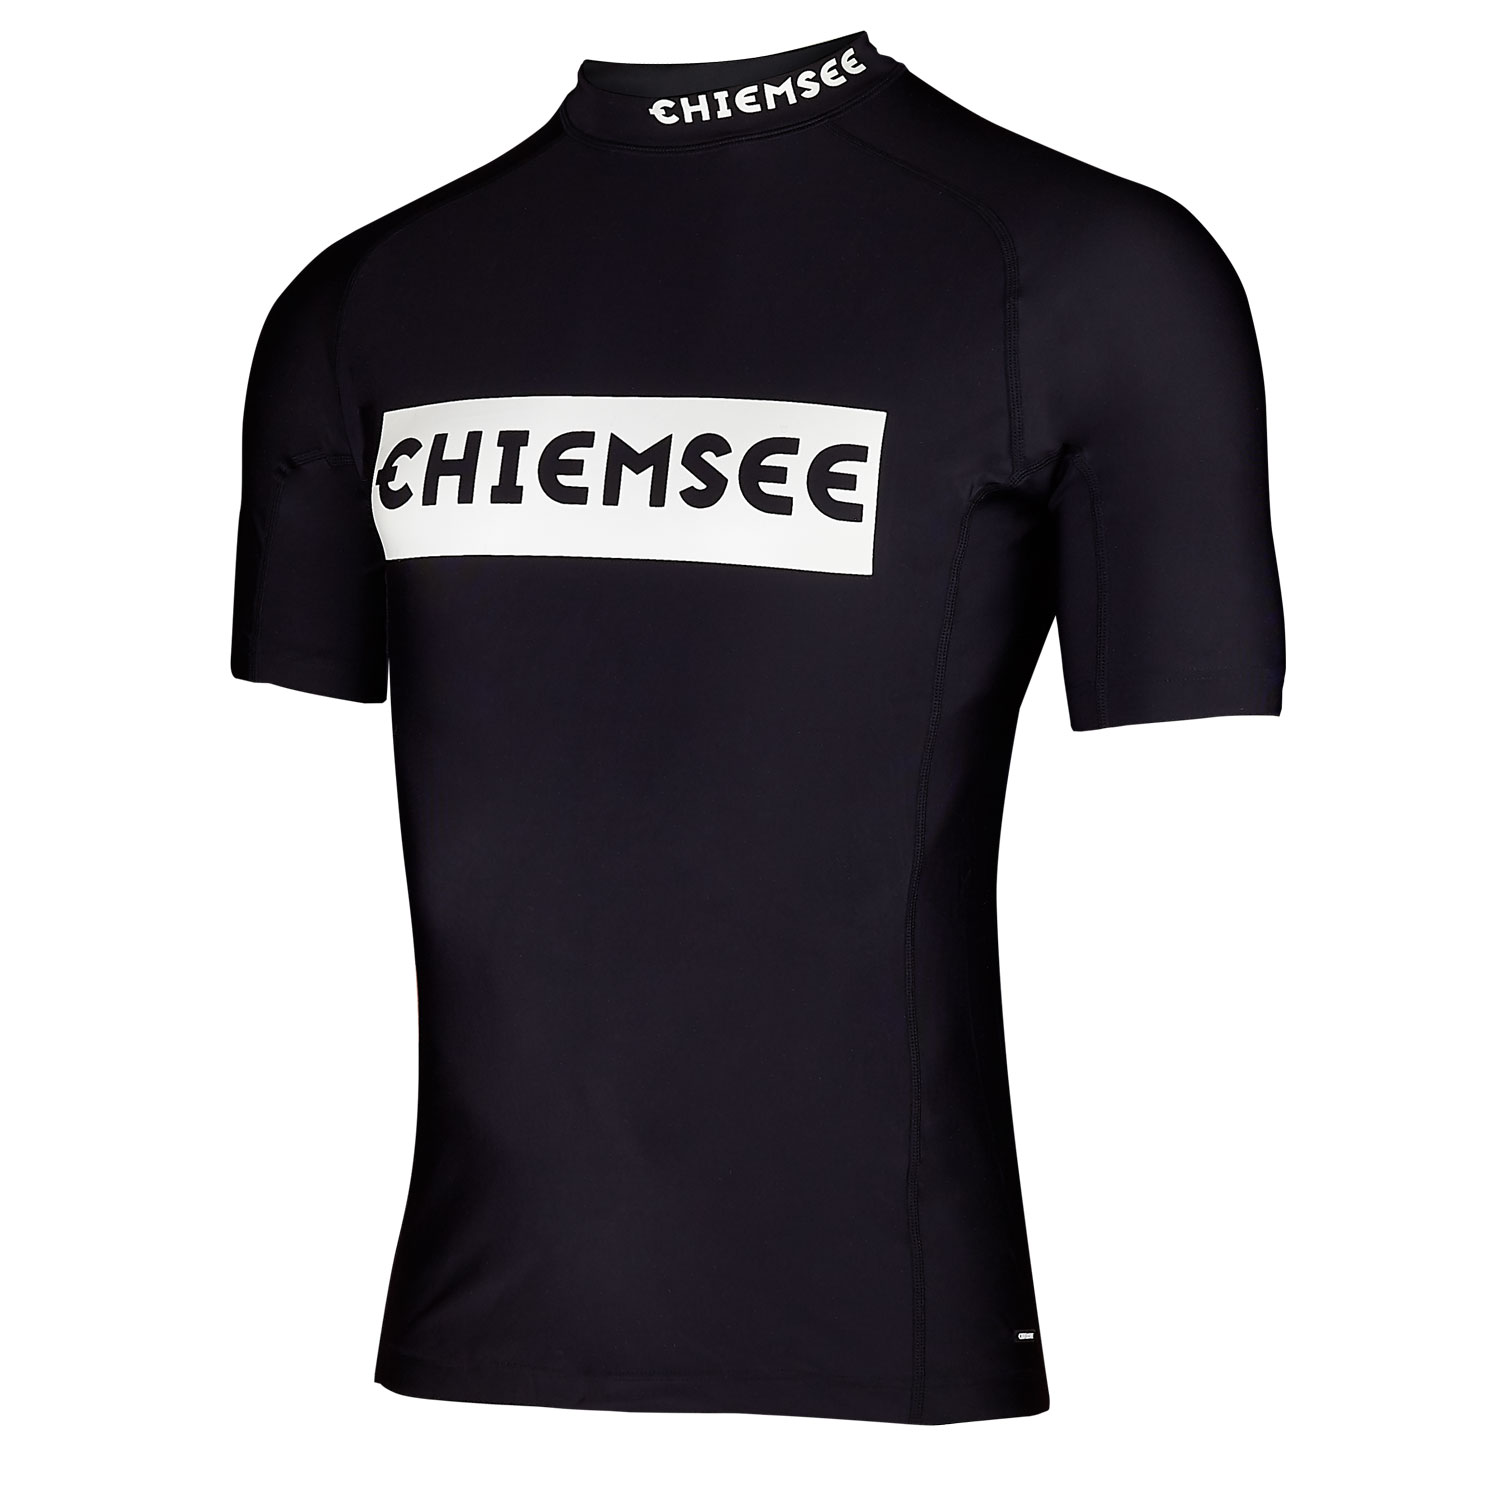 Chiemsee Surflycra Shirt Awesome Unisex schwarz – Bild 1